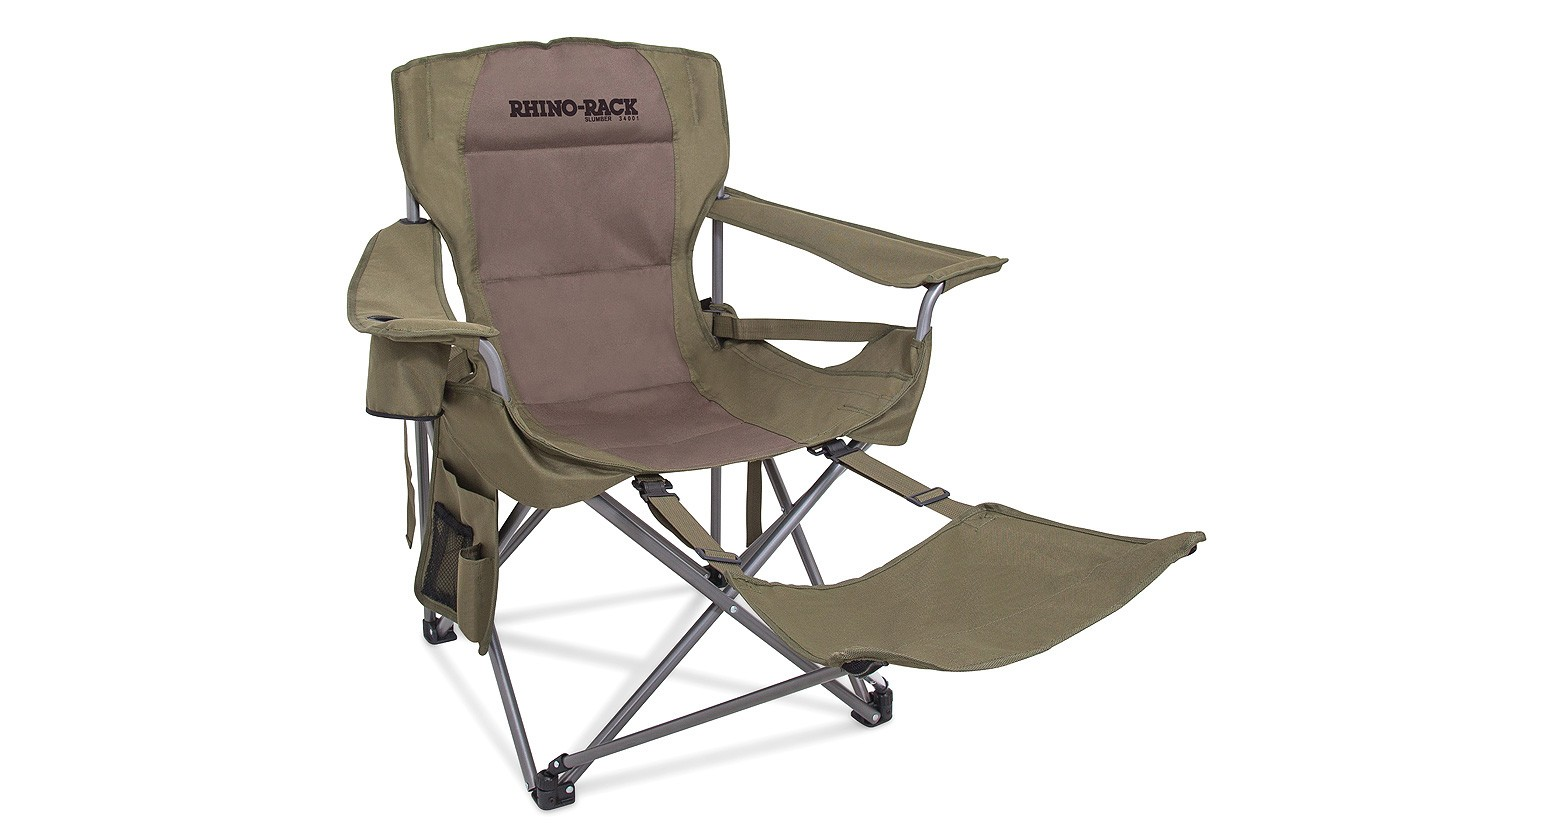 fauteuil pliant rhino rack avec repose pieds amovible. Black Bedroom Furniture Sets. Home Design Ideas